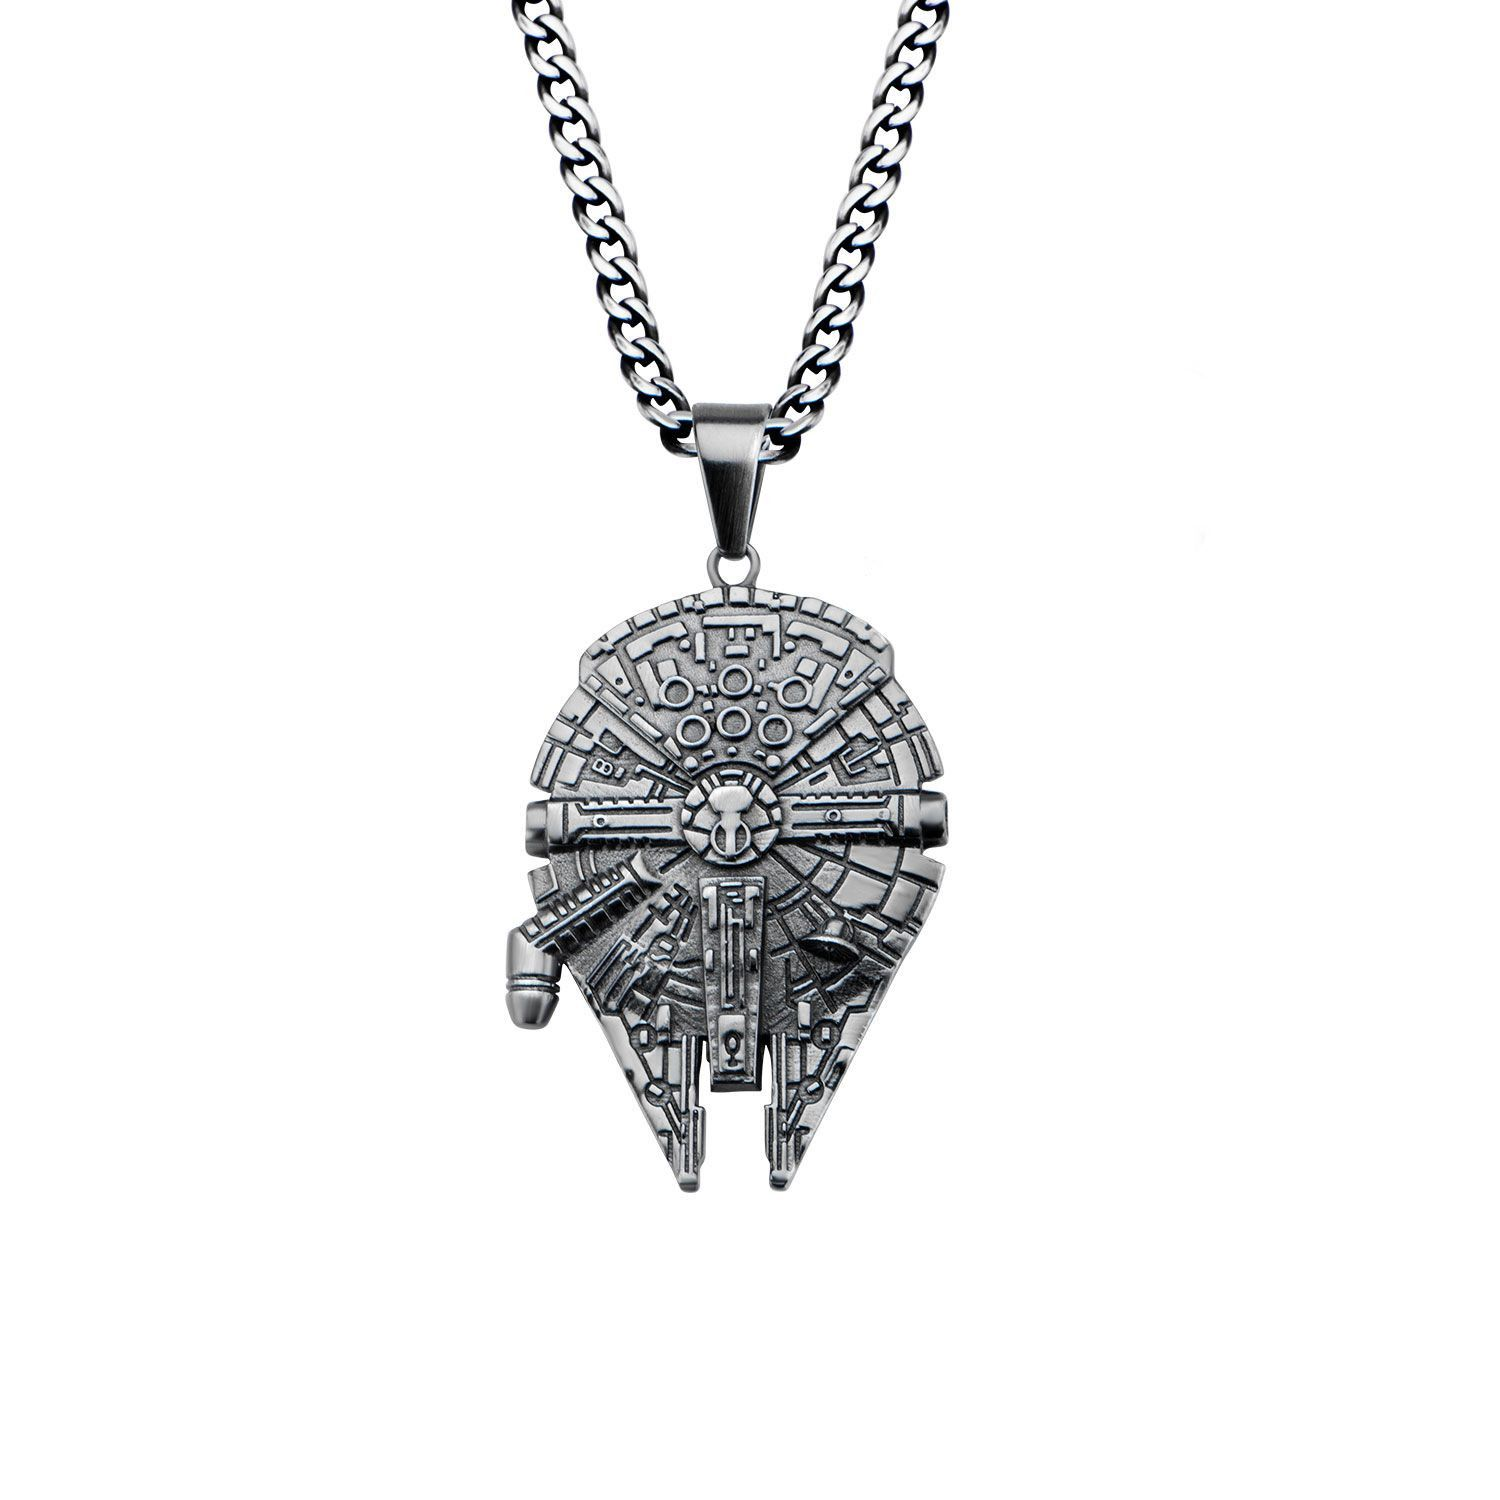 X-WING STAR FIGHTER 3D STAINLESS STEEL PENDANT ON CHAIN NECKLACE STAR WARS